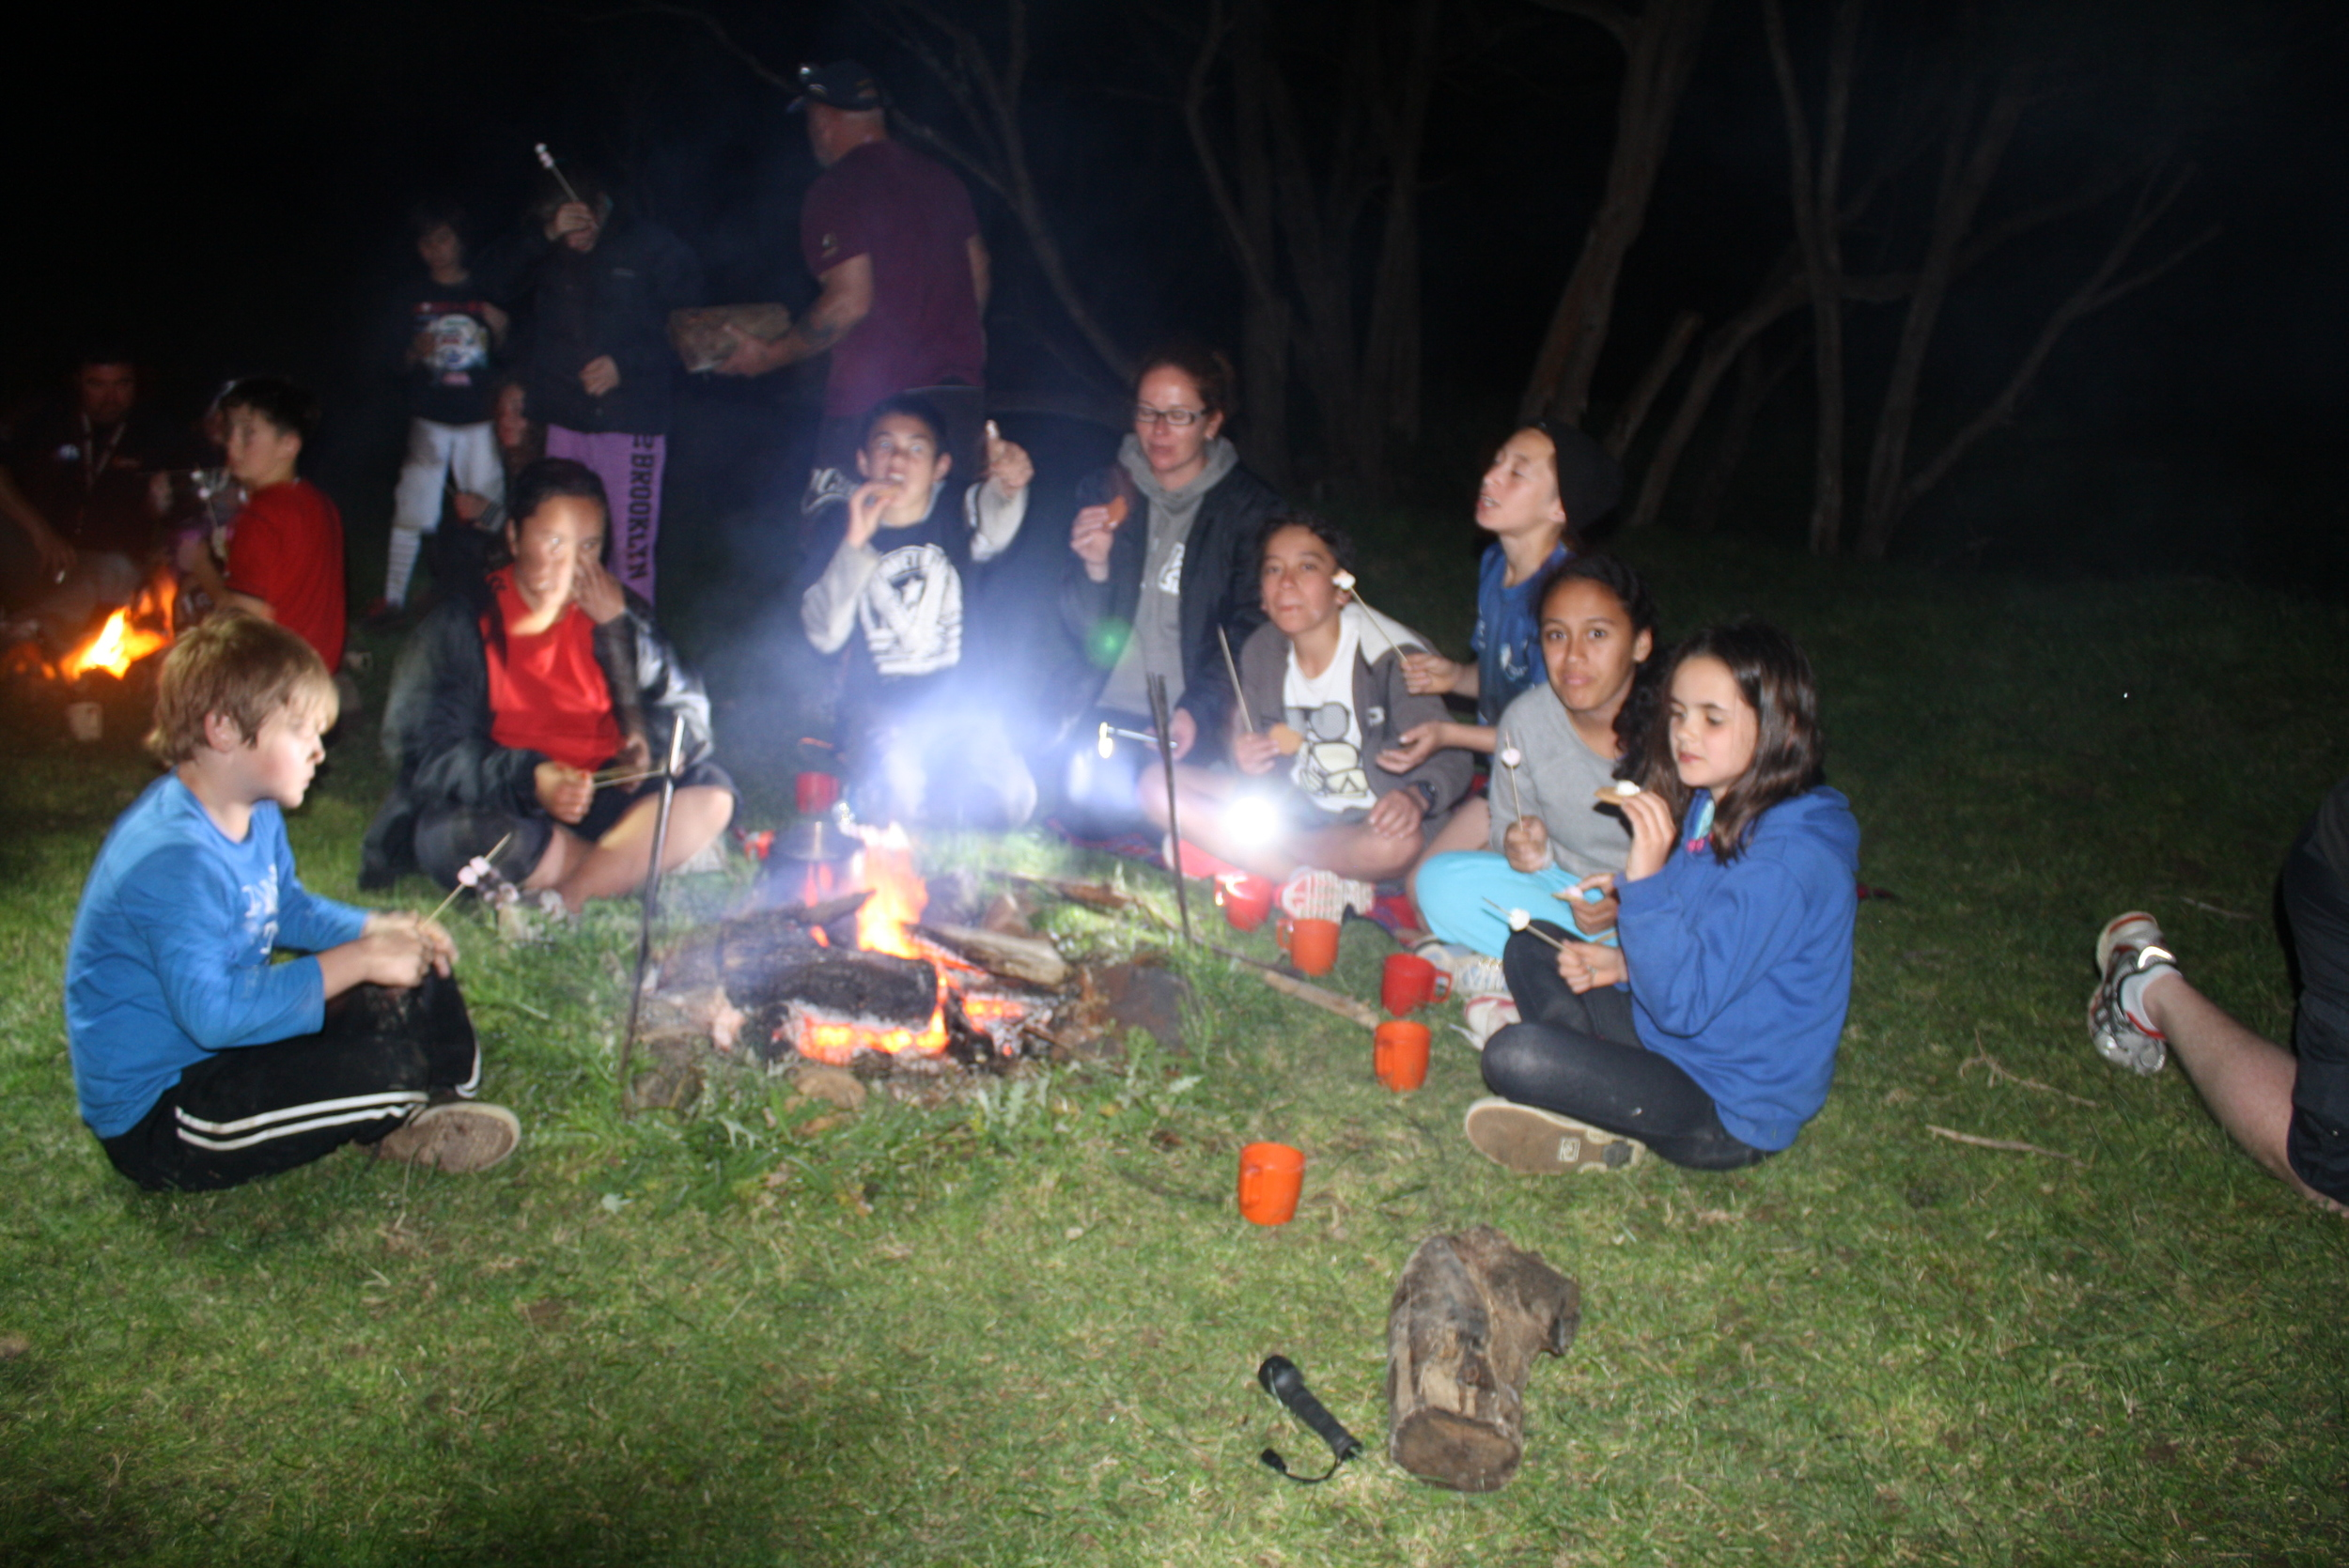 Camp fires (with permit) are a camp classic activity. Please supply your own wood. 2 port-a-loos are available for camping and abseiling.